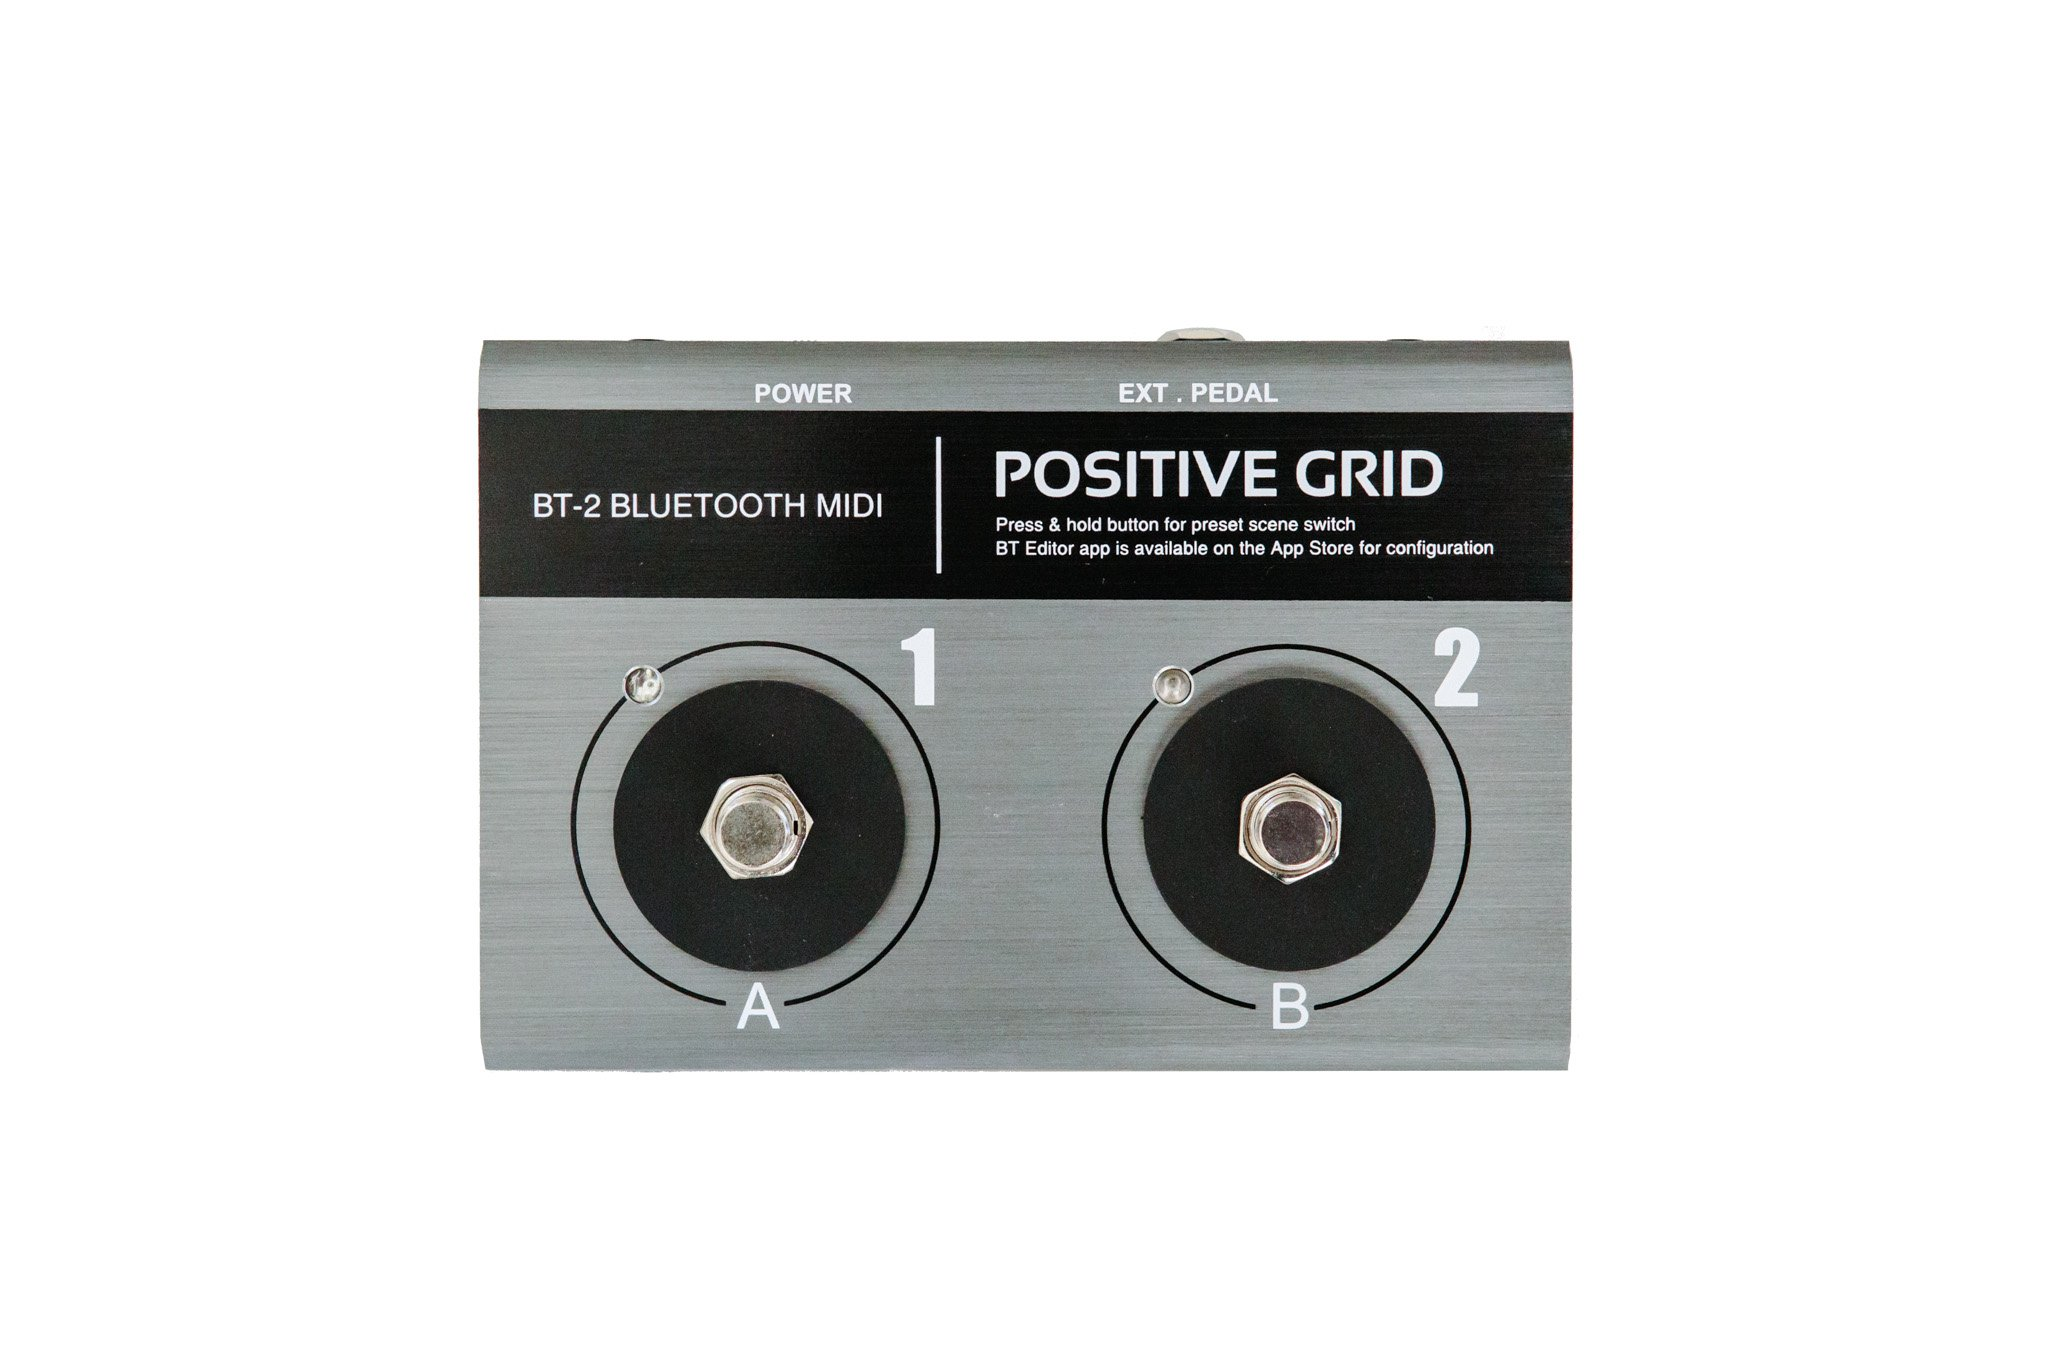 BT-2 Bluetooth MIDI Pedal by Positive Grid